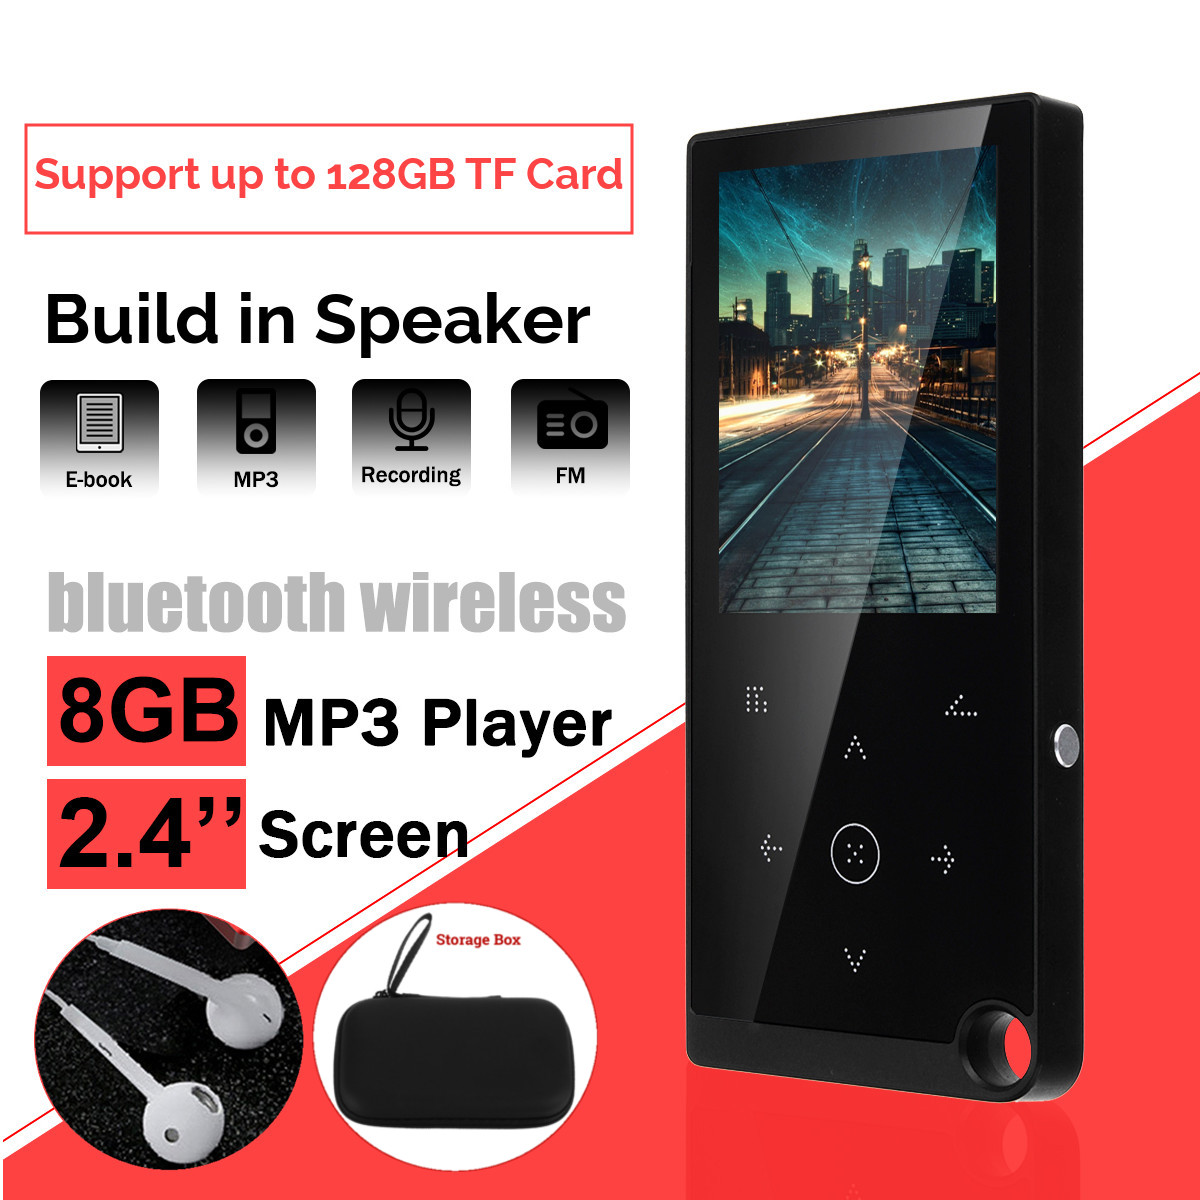 2.4 Inches Screen Bluetooth Portable MP3 MP 4 Players FM Radio E-book Voice Recorder Audio Video HiFi Music Player With Earphone